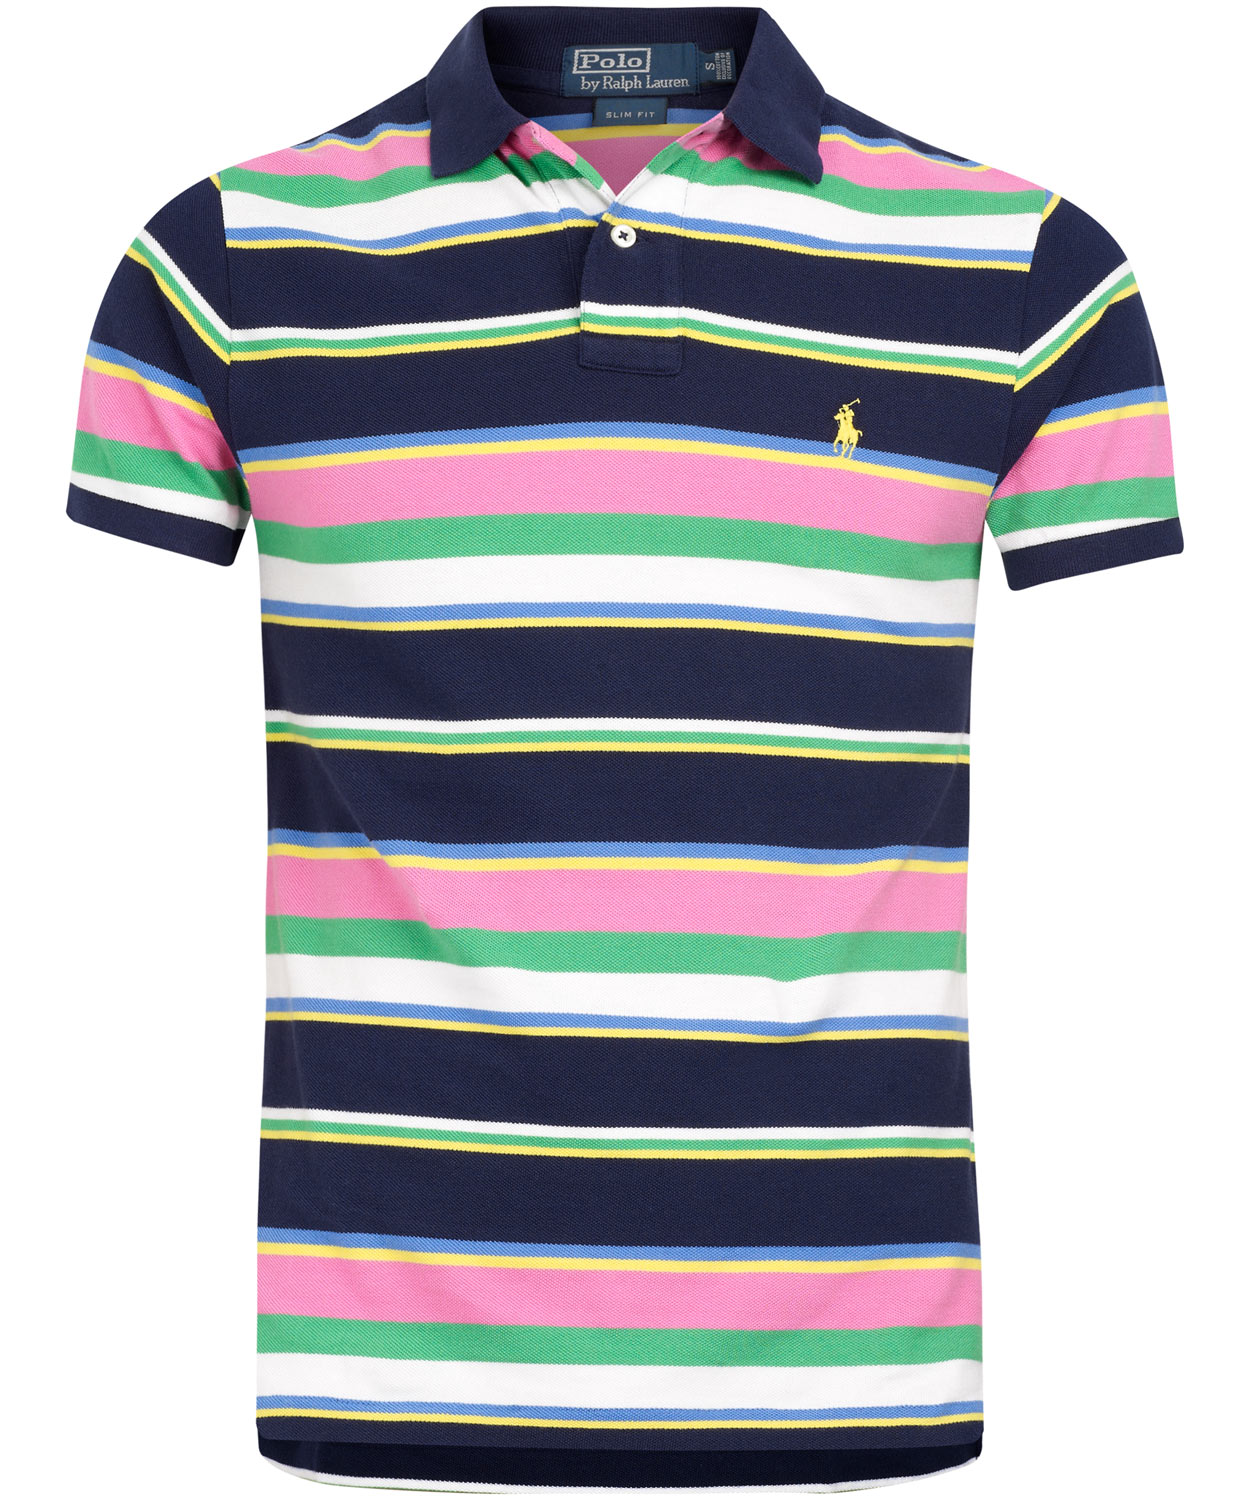 Lyst Polo Ralph Lauren Navy And Multi Stripe Polo Shirt In Blue